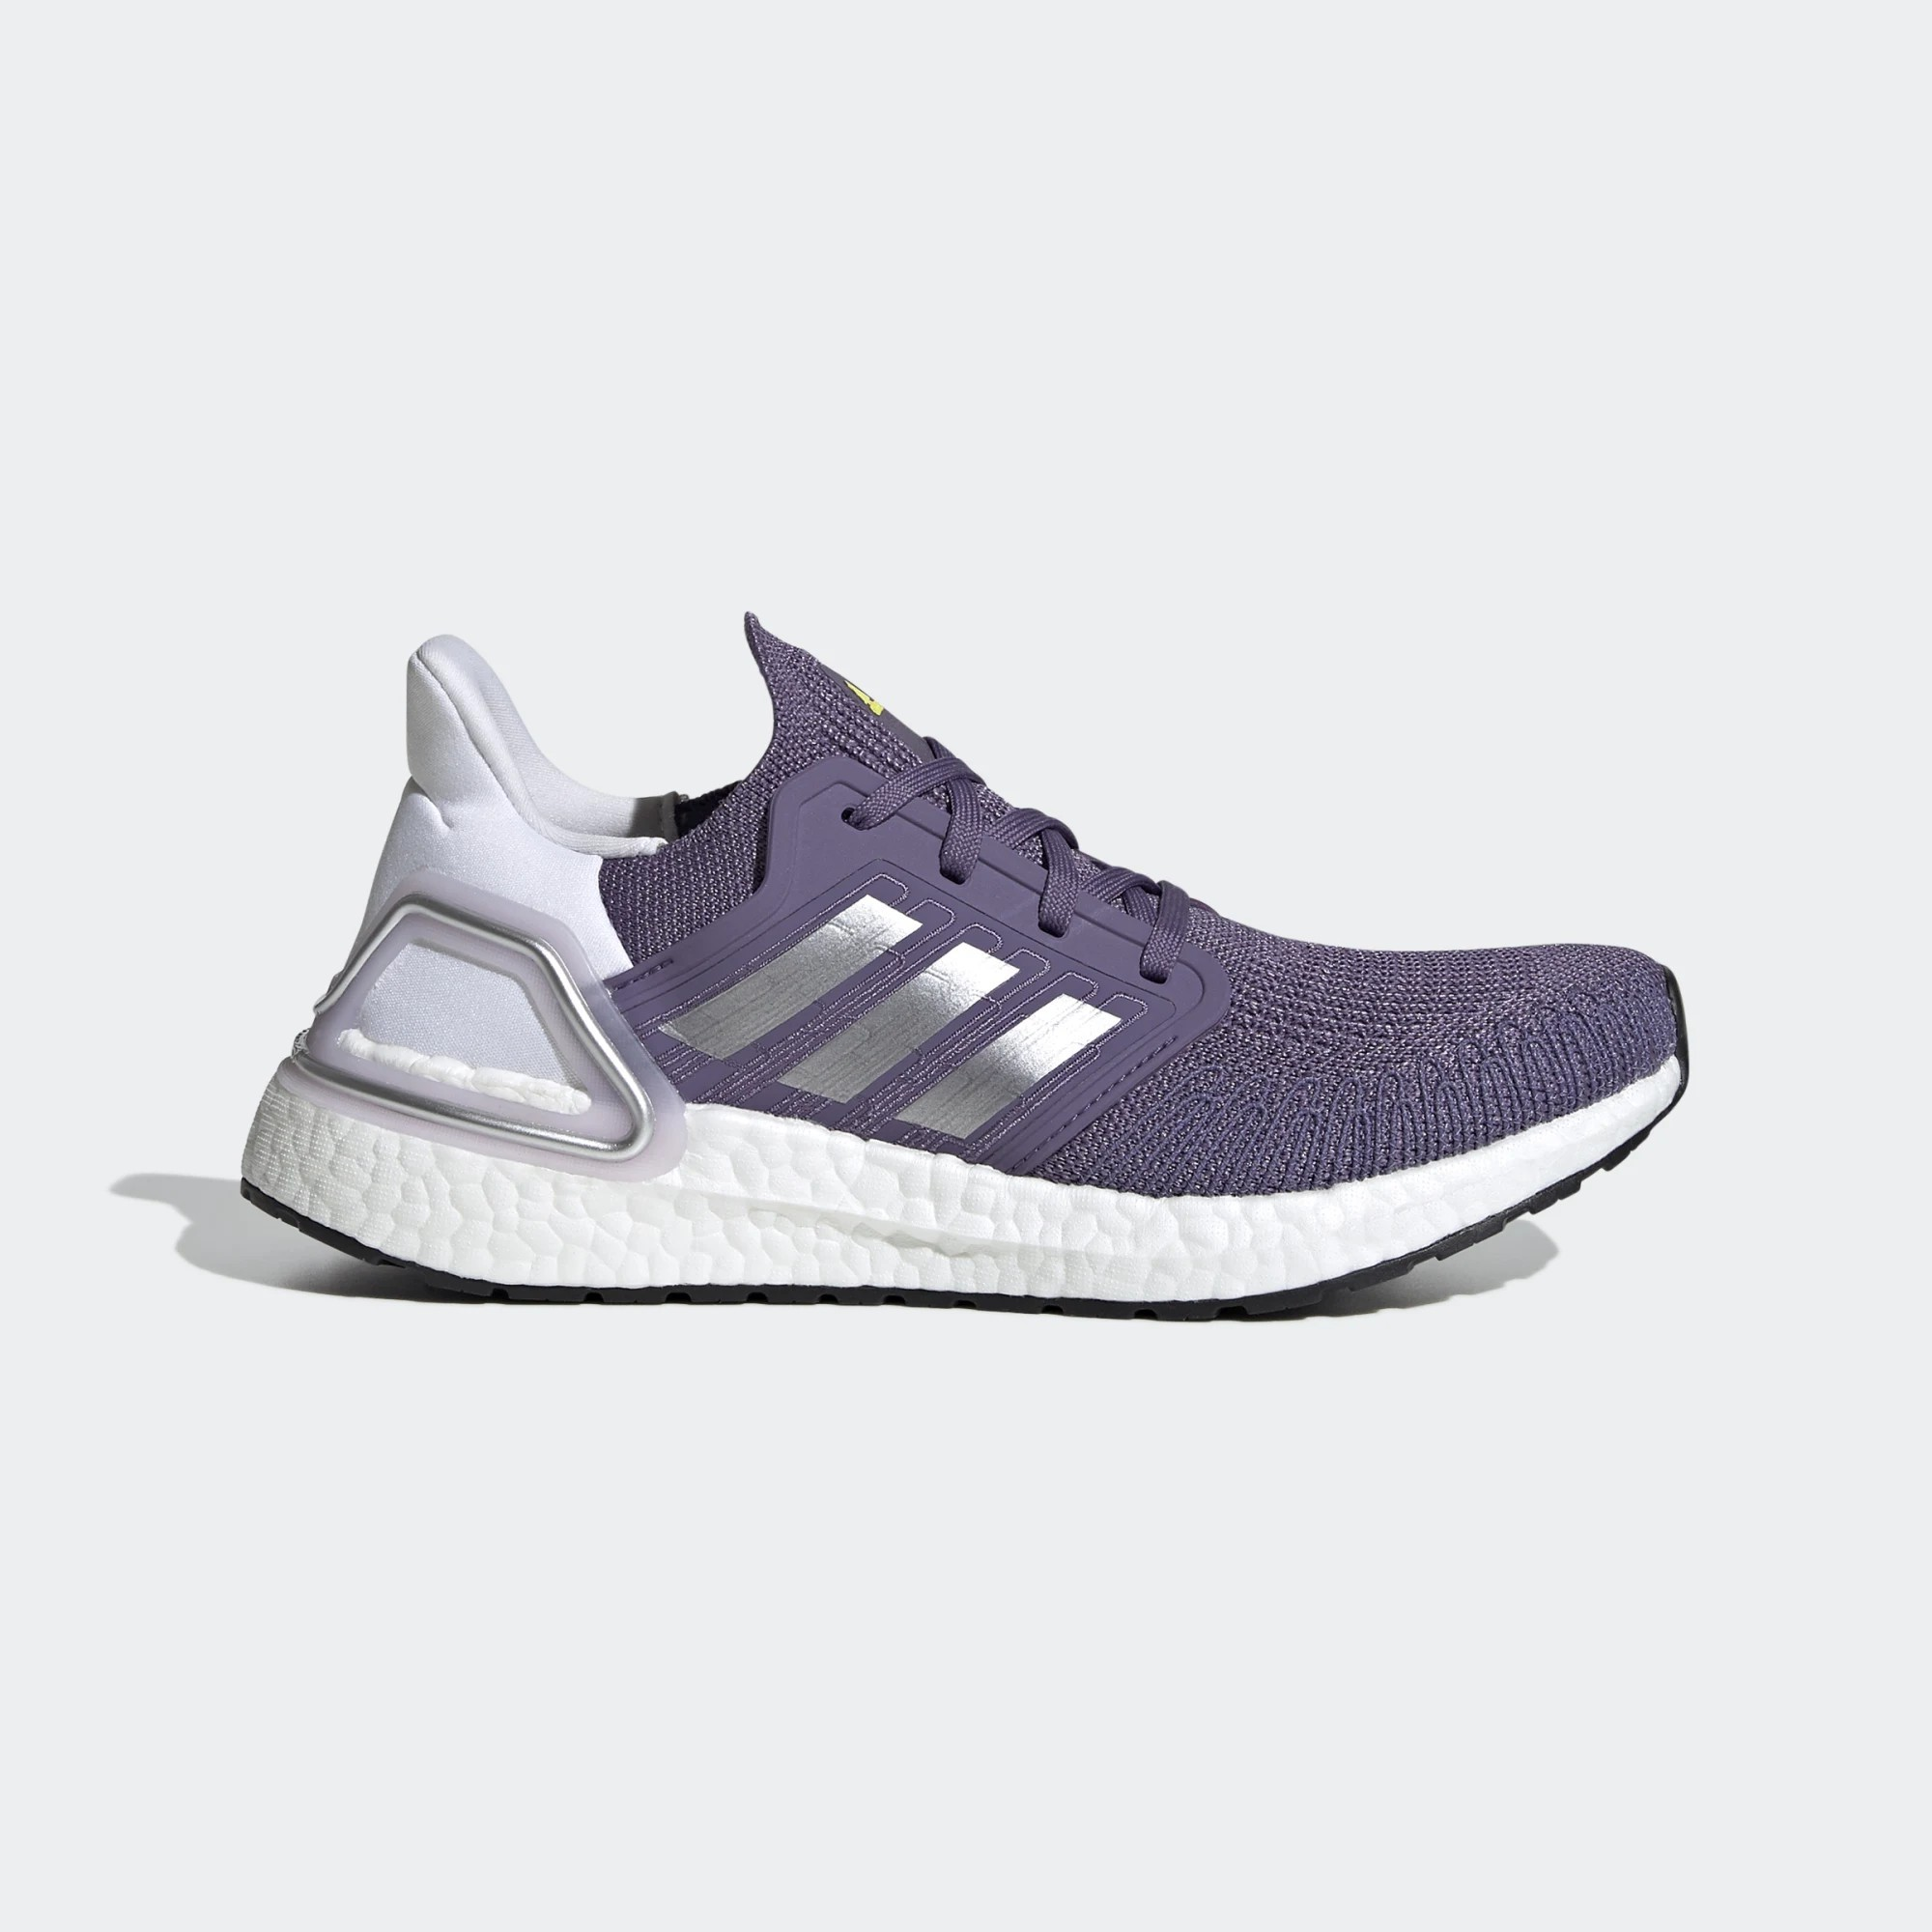 Wmns UltraBoost 20 'Tech Purple' - adidas - EG0718